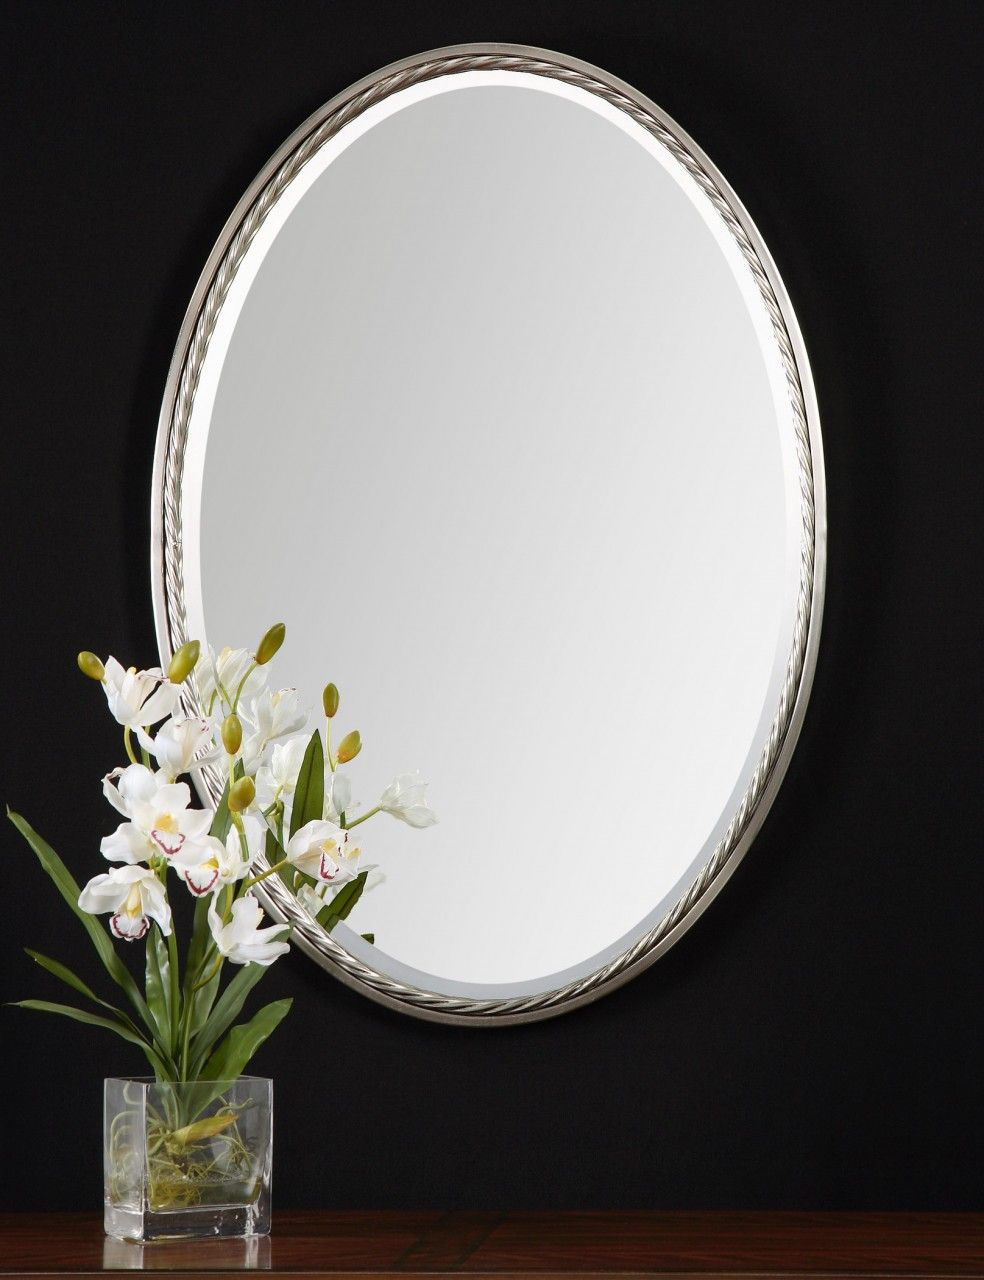 Bathroom Small Oval Bathroom Mirror With New Decorative Design From Good Looking Oval Bathroo Brushed Nickel